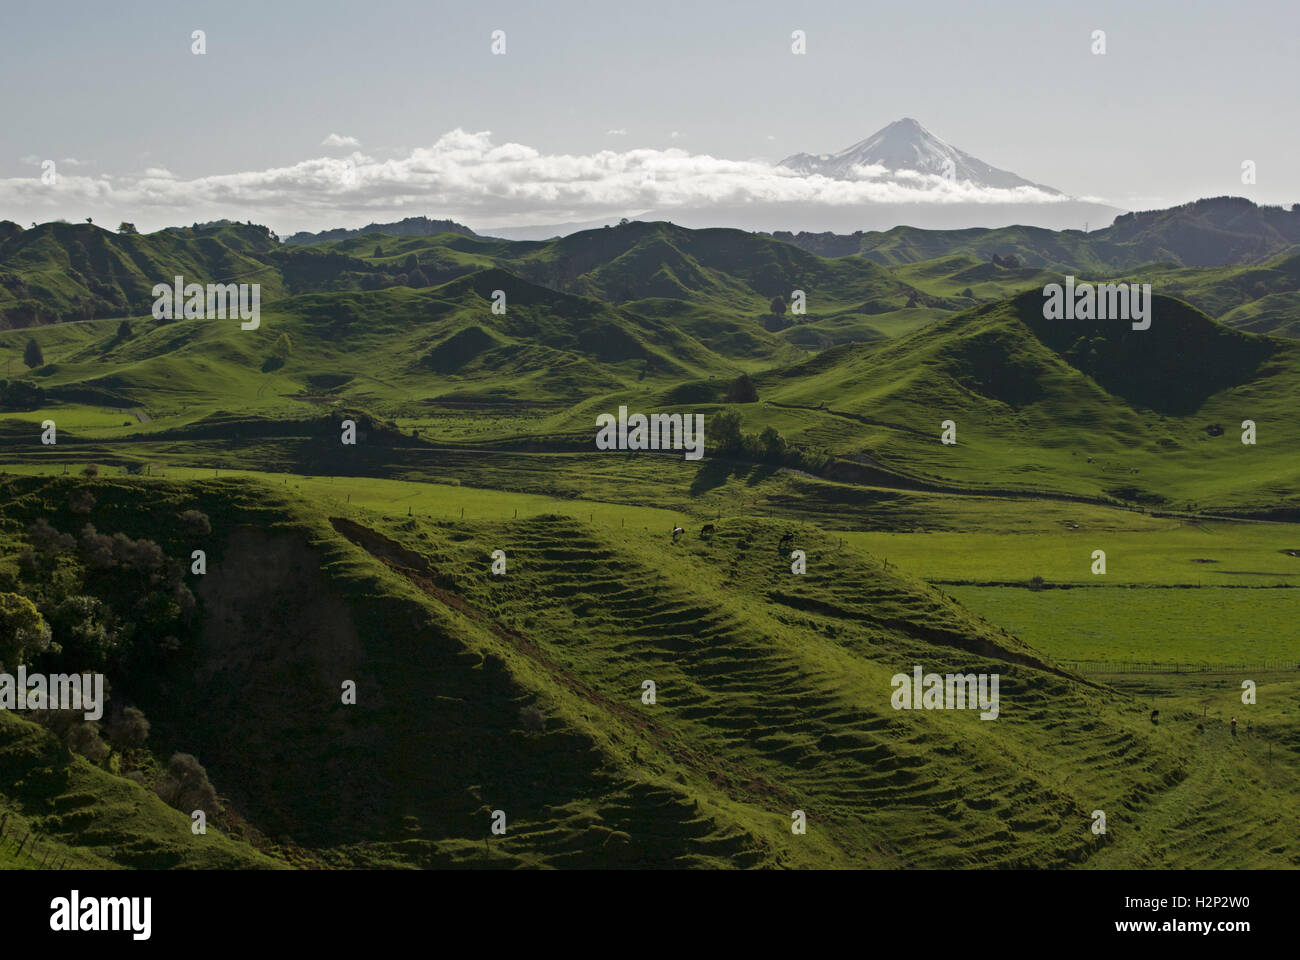 A hazy view of Mount Taranaki from the Forgotten Highway. - Stock Image